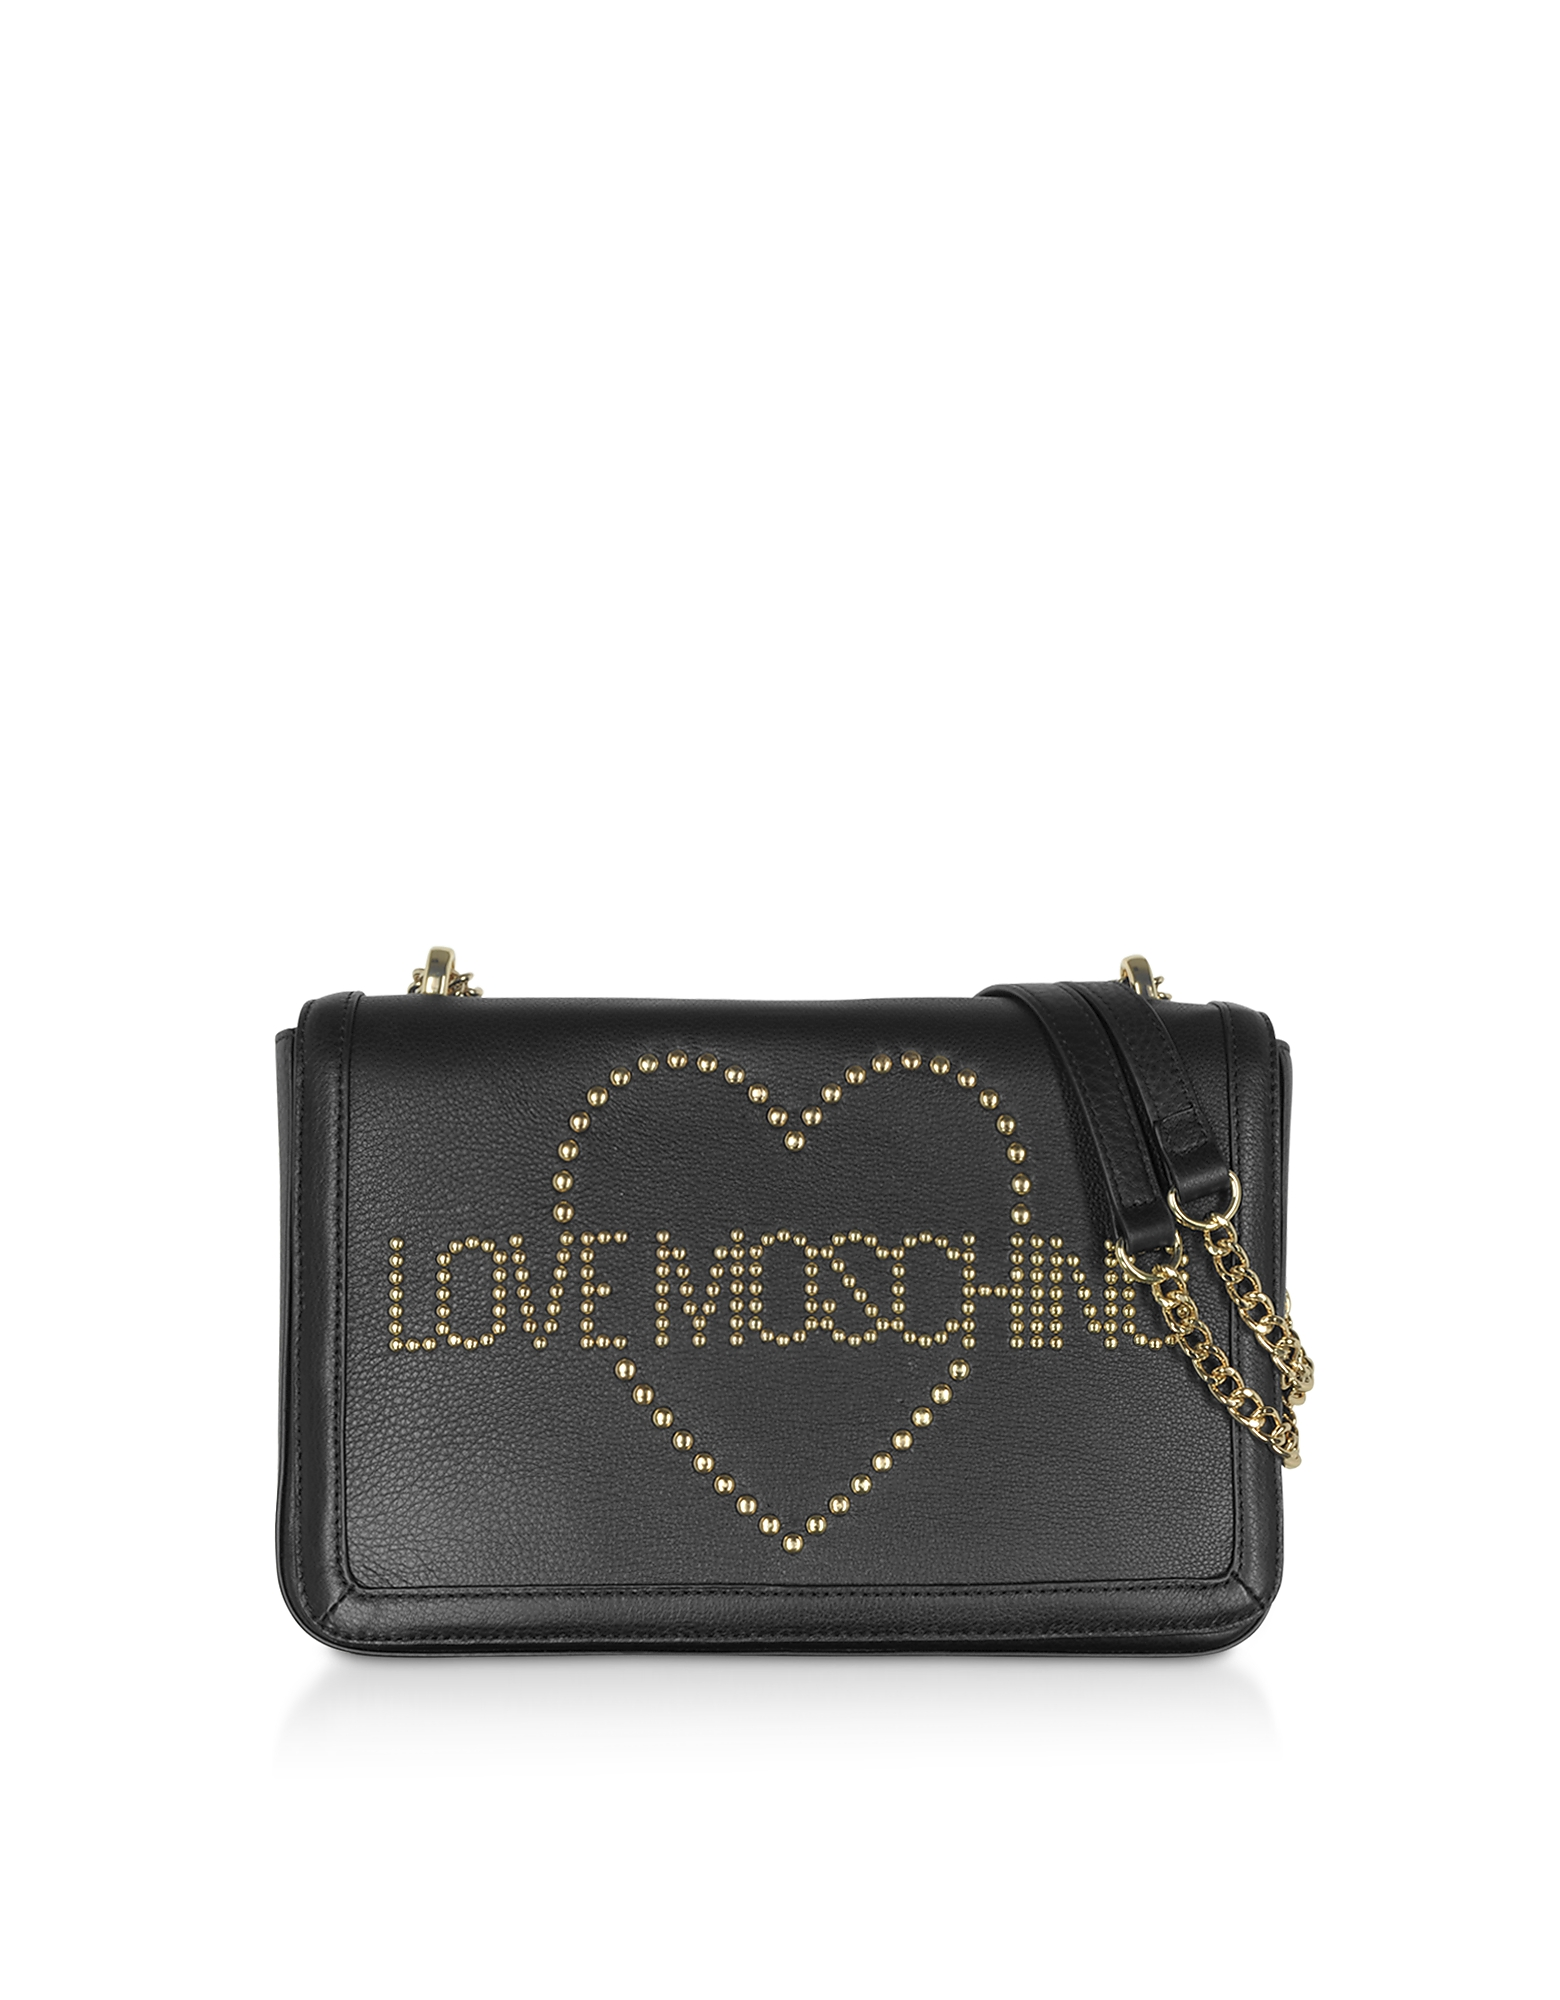 Love Moschino Designer Handbags, Signature Golden Studs Black Leather Shoulder Bag